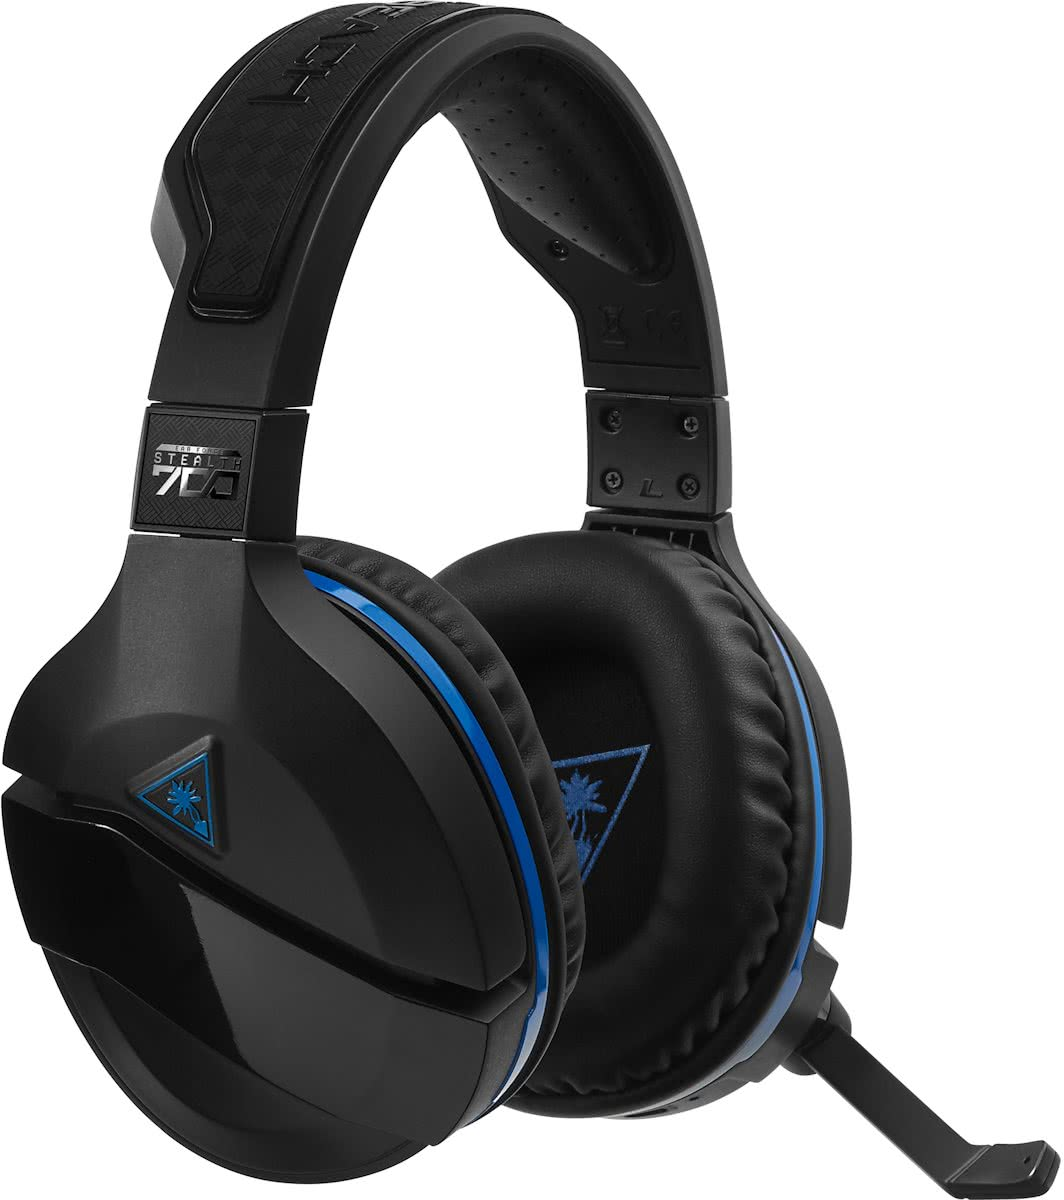 TURTLE BEACH® STEALTH 700 premium draadloze surround sound gamingheadset voor PlayStation®4 Pro en PlayStation®4